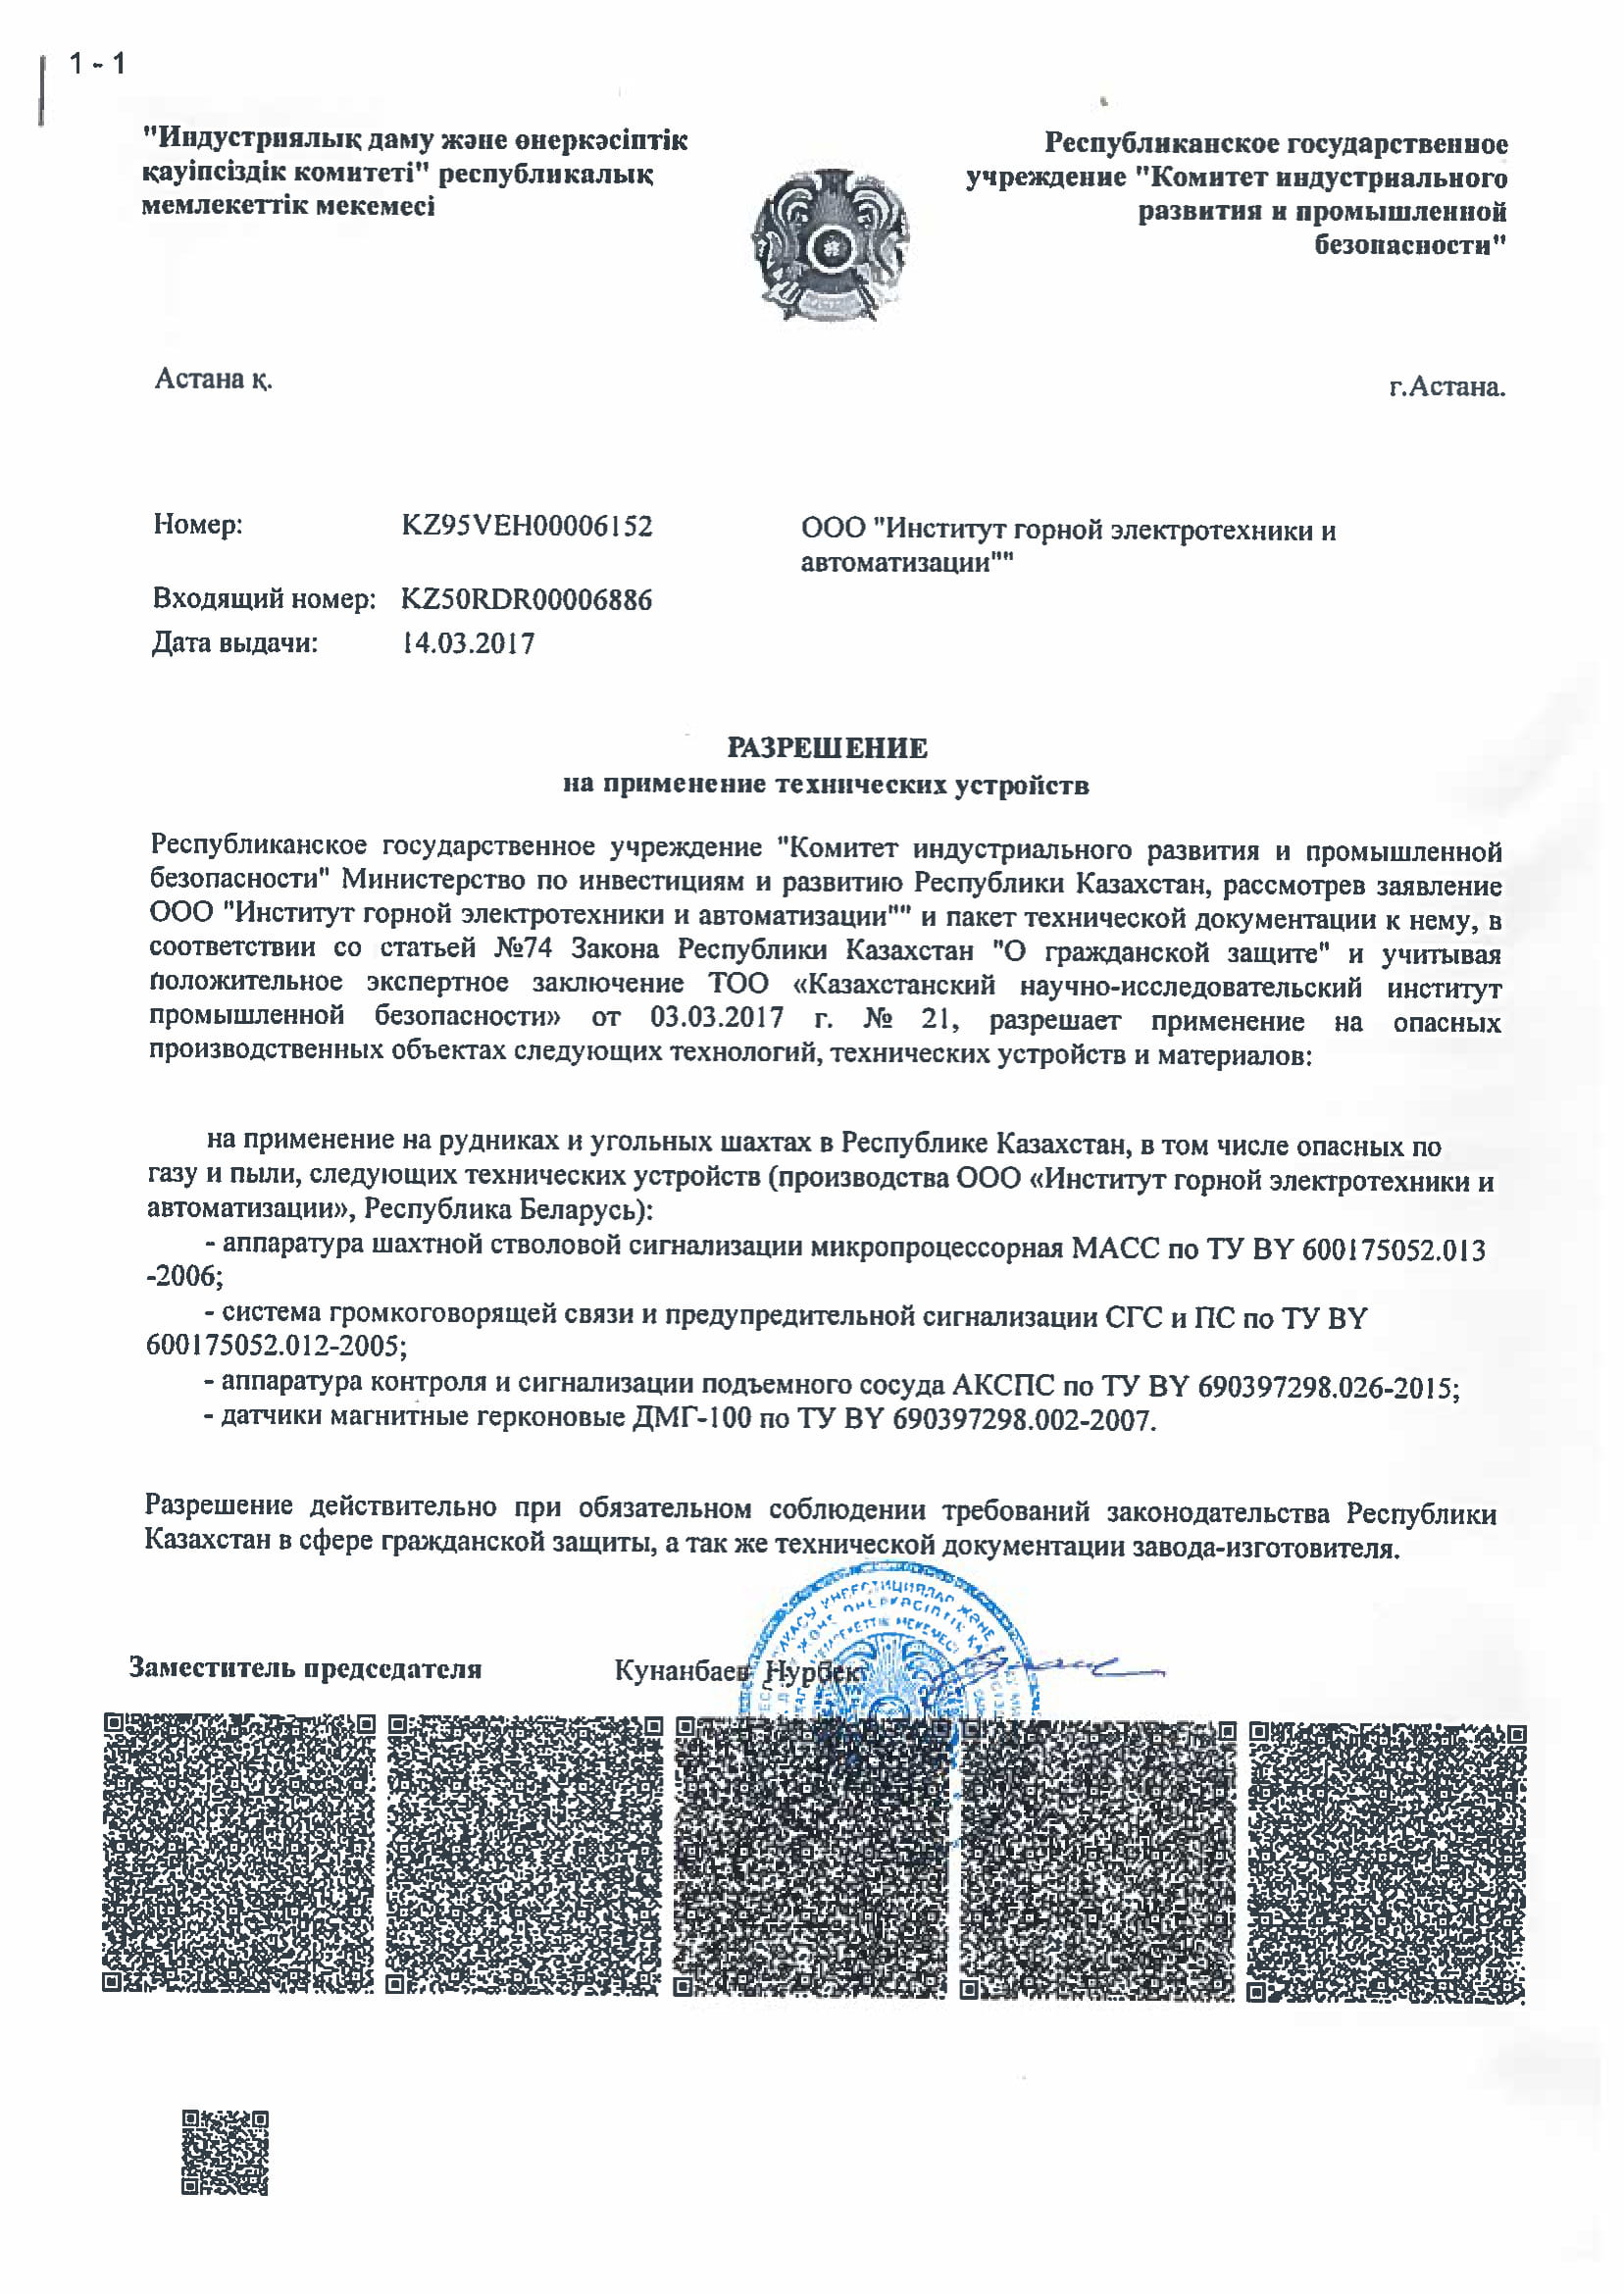 Permit to use in Kazakhstan KZ95VEH00006152 dated 14.03.2017